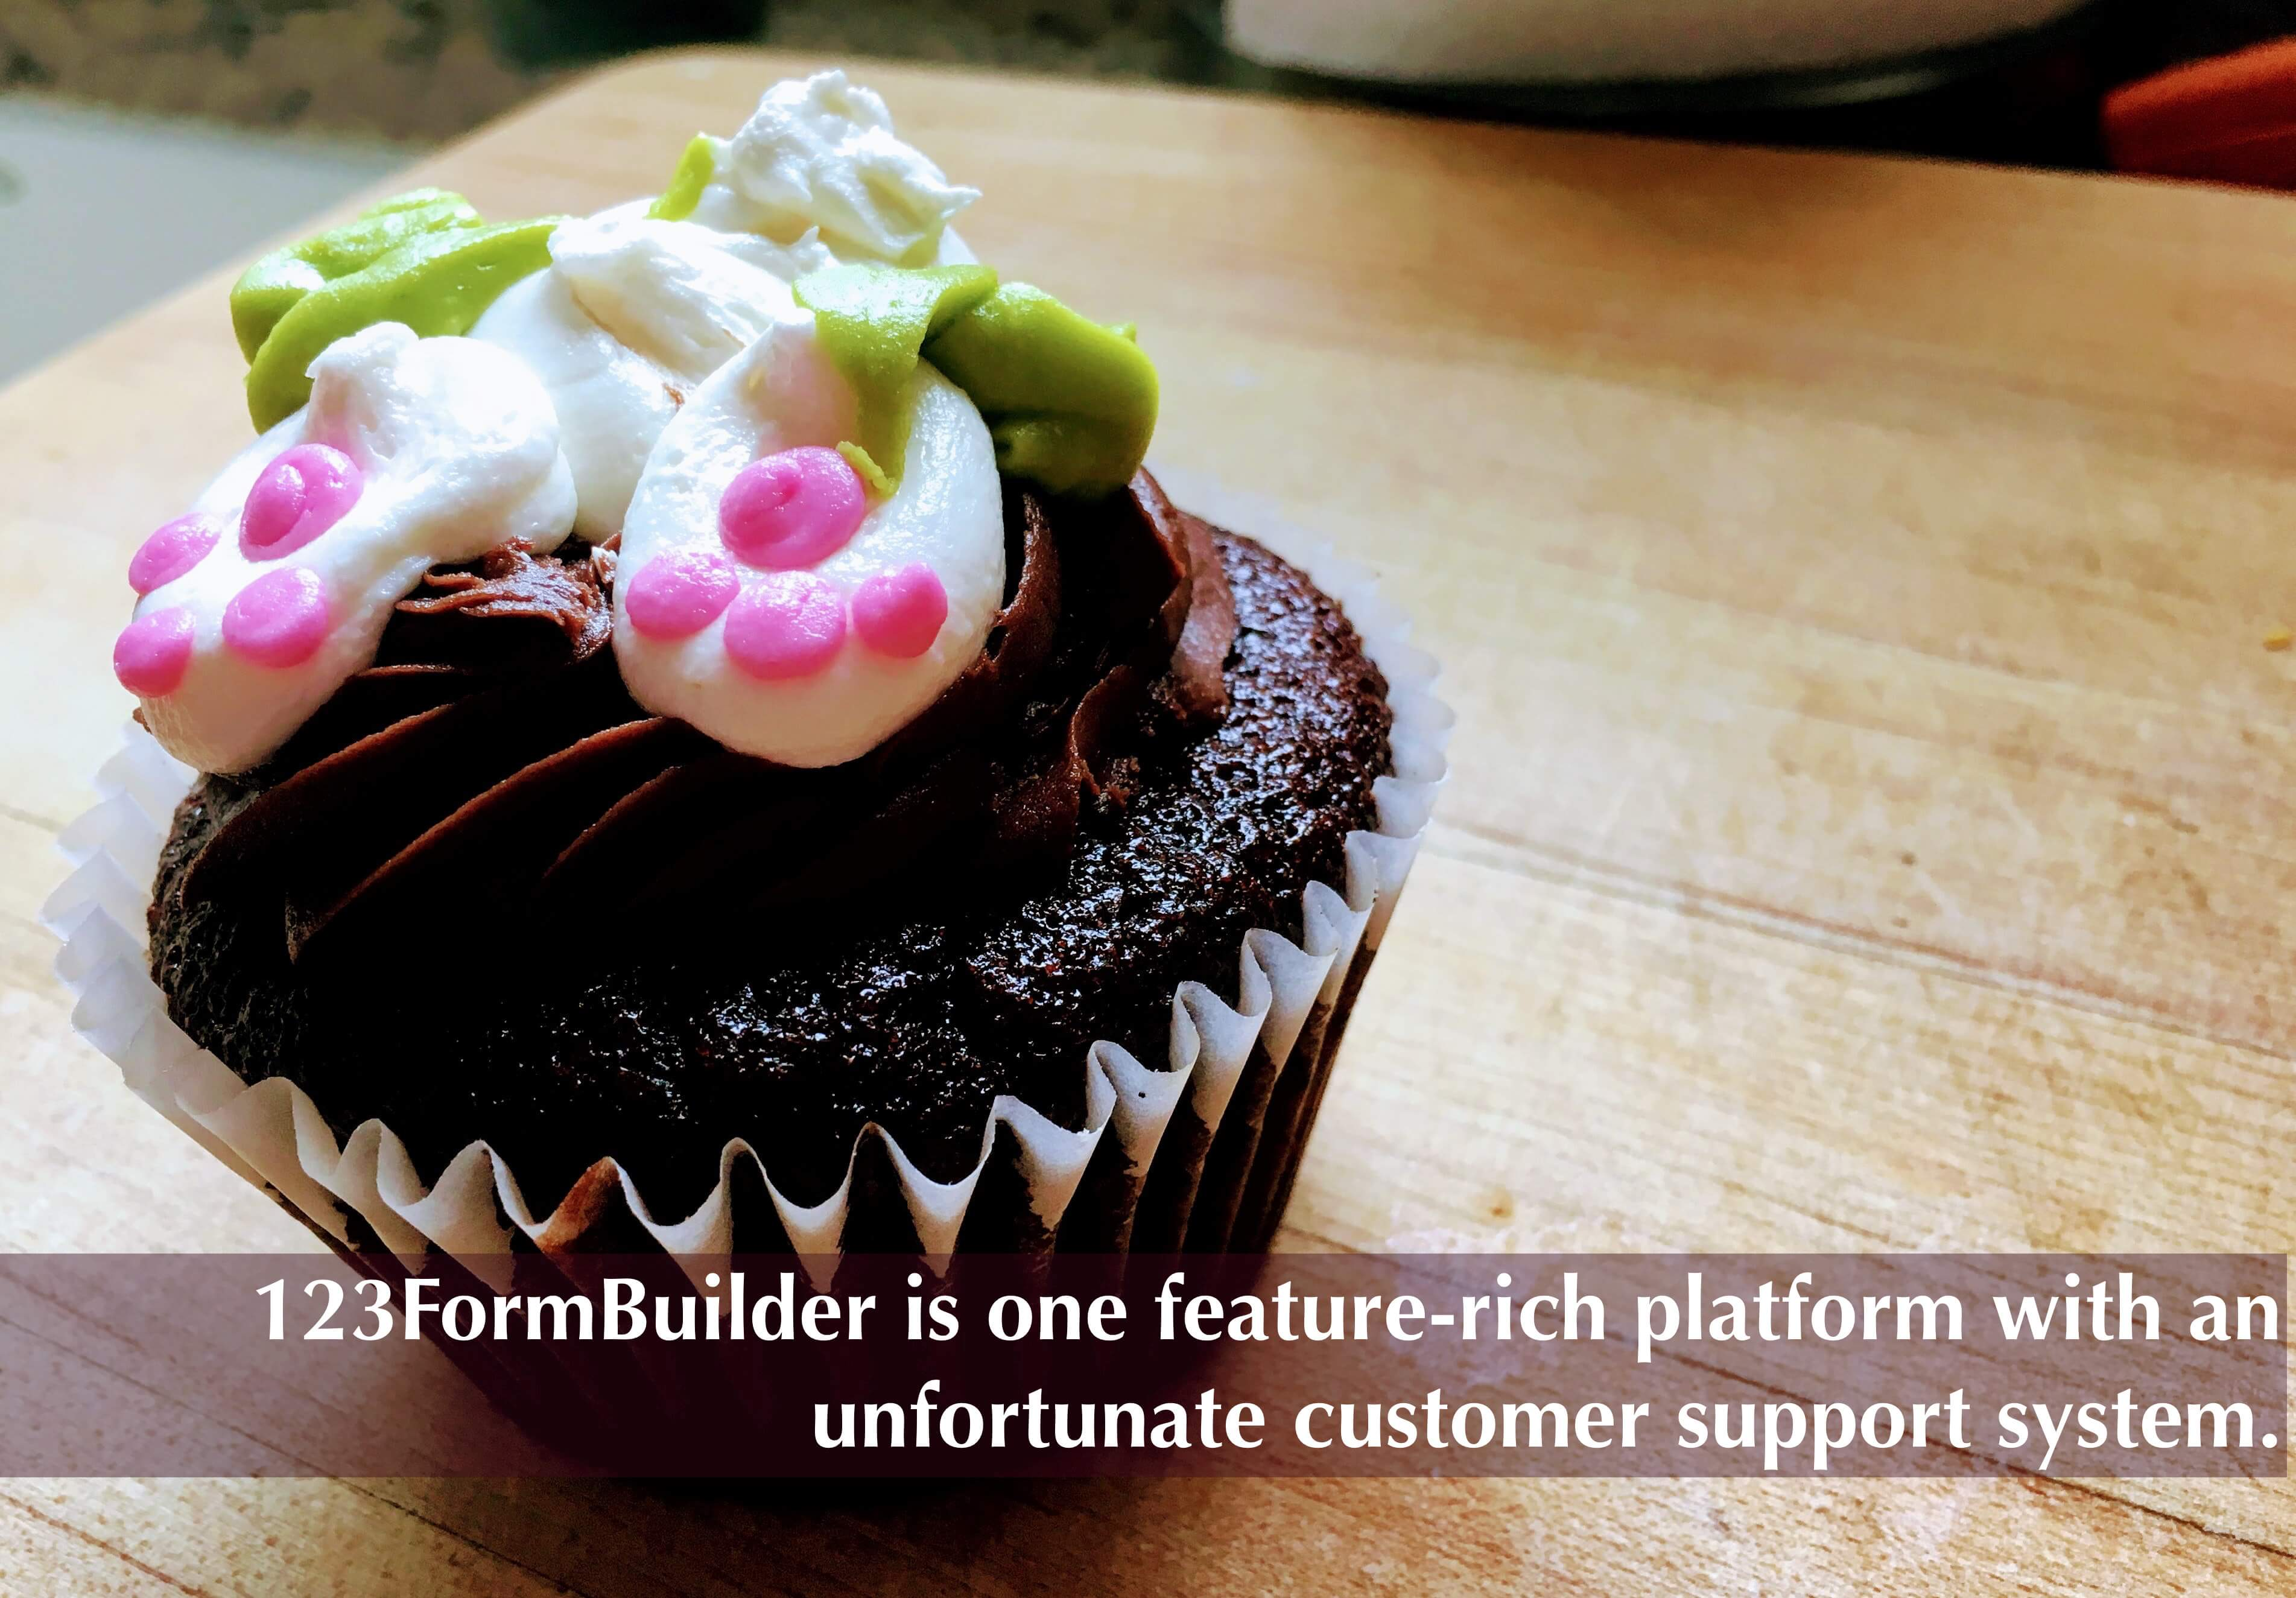 123FormBuilder is one feature-rich platform with an unfortunate customer support system.